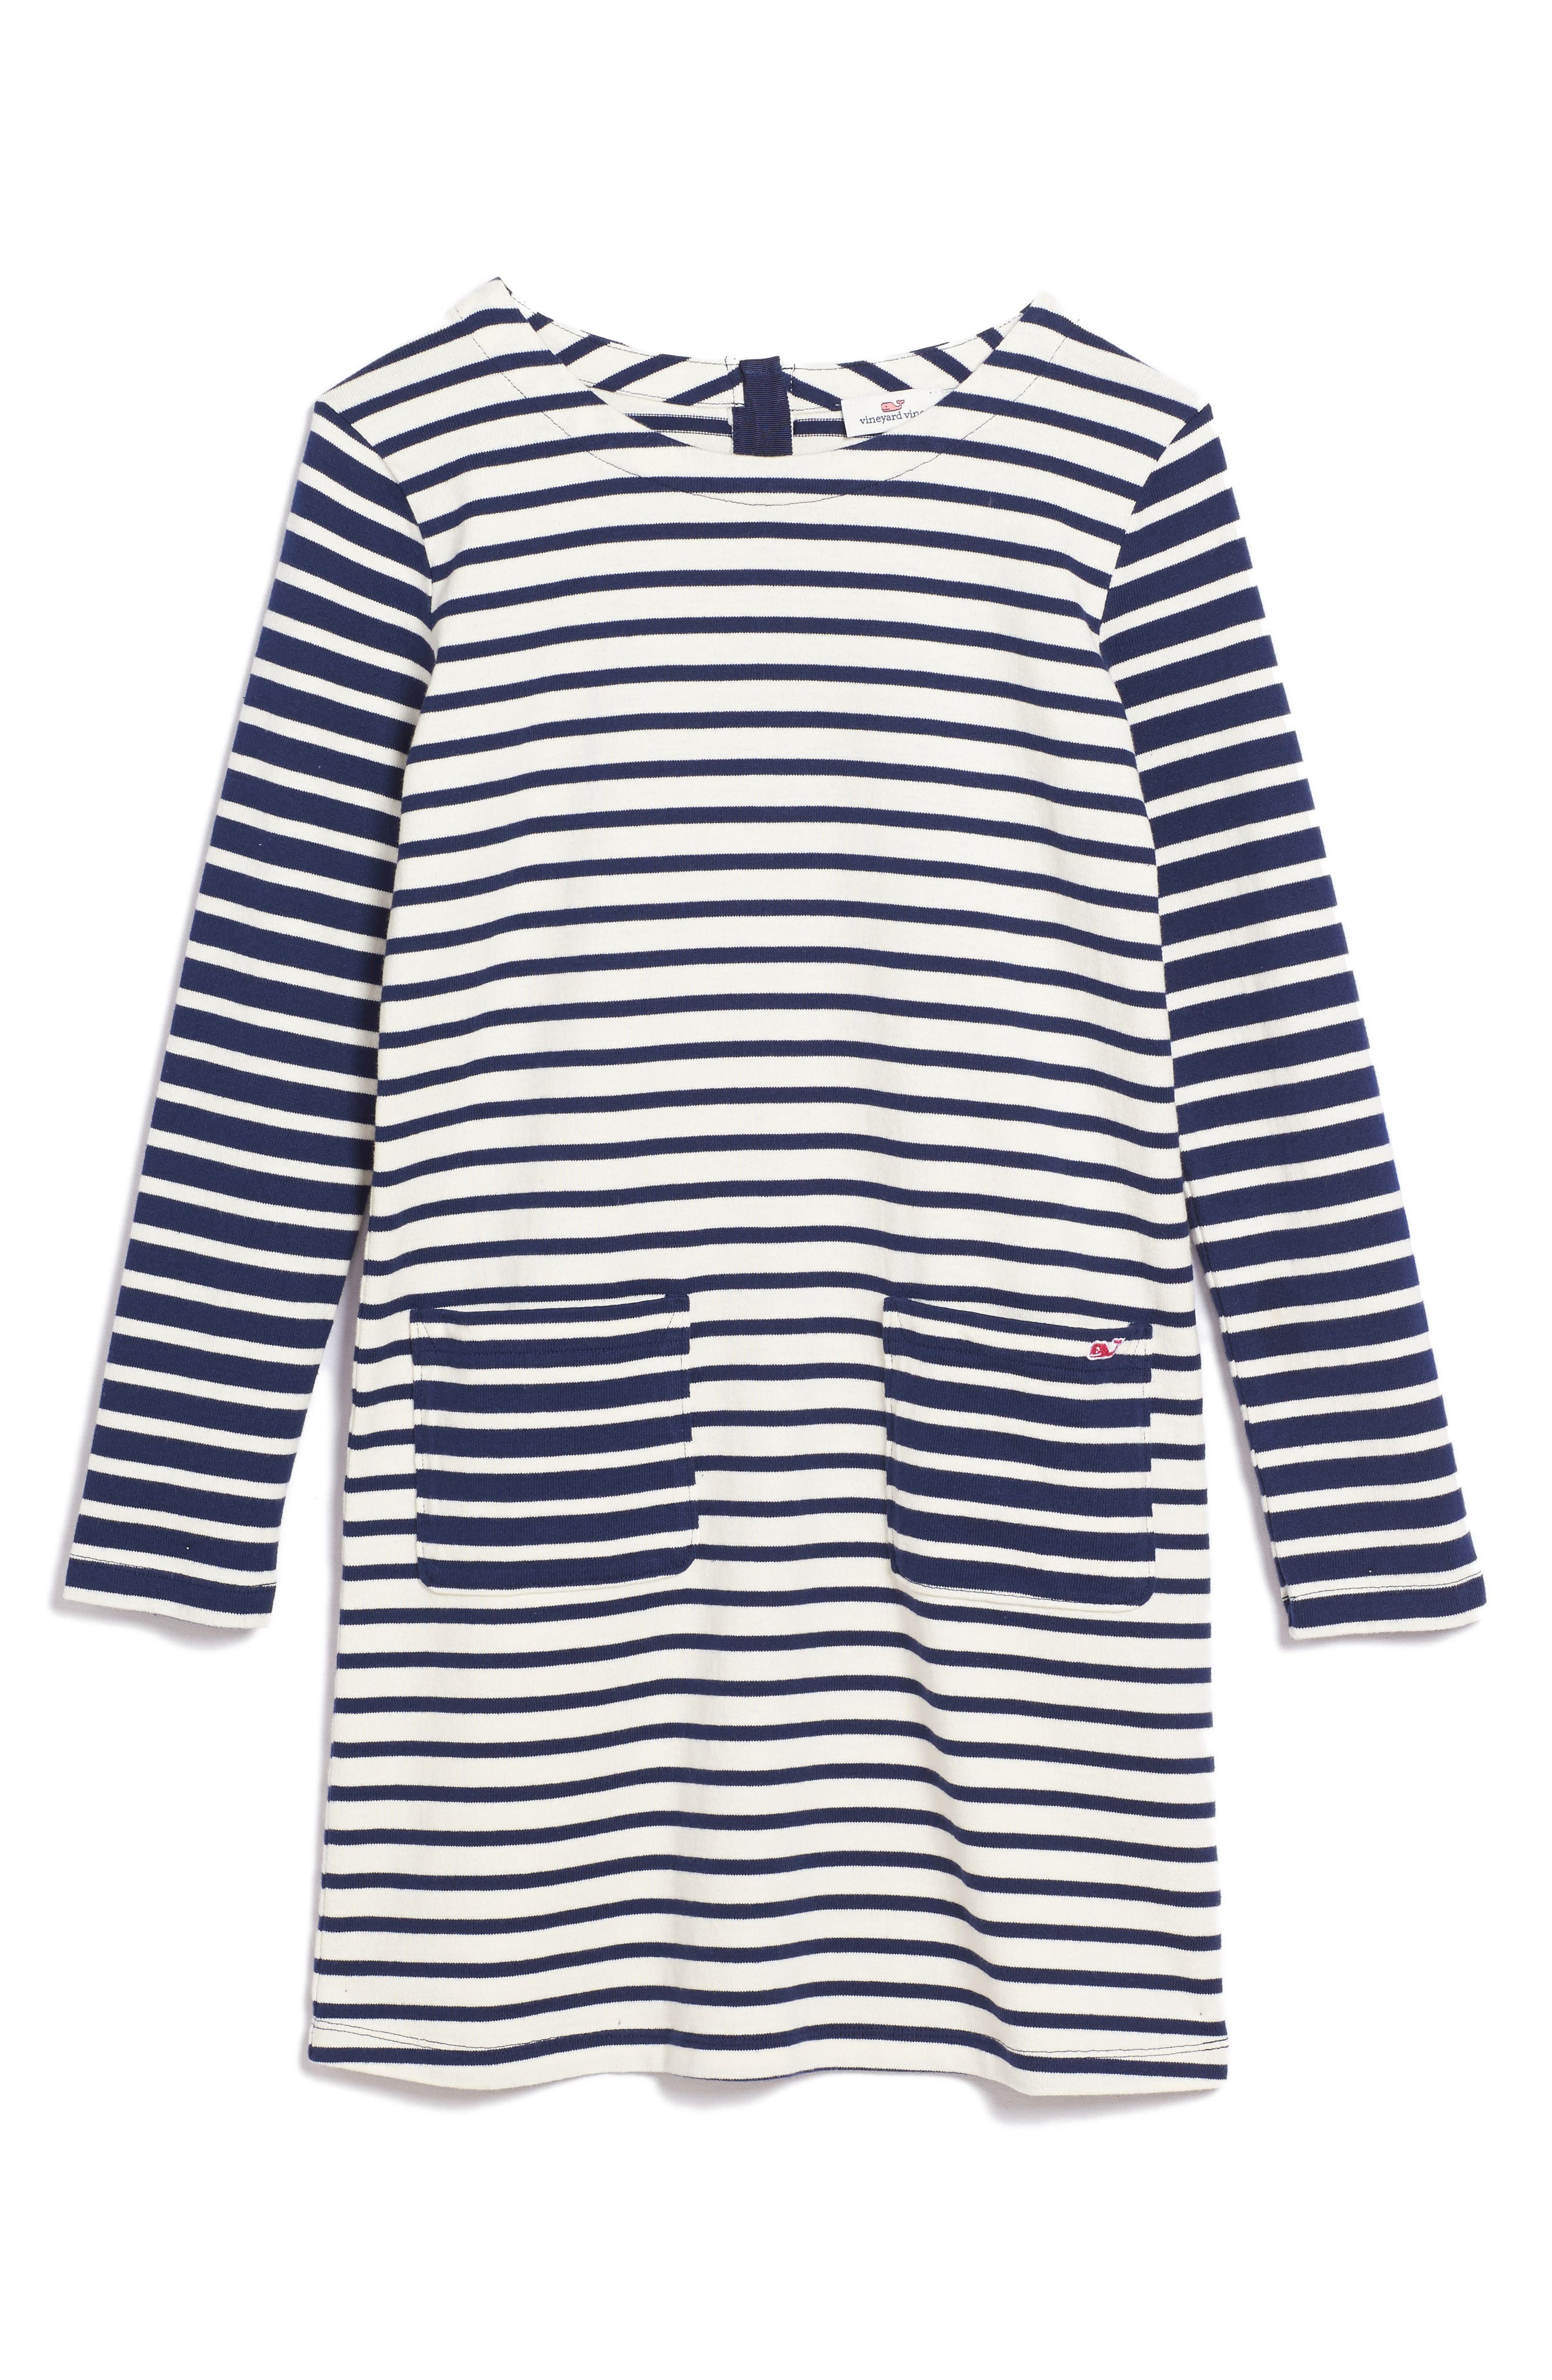 Main Image - vineyard vines Stripe Knit Dress (Little Girls & Big Girls)